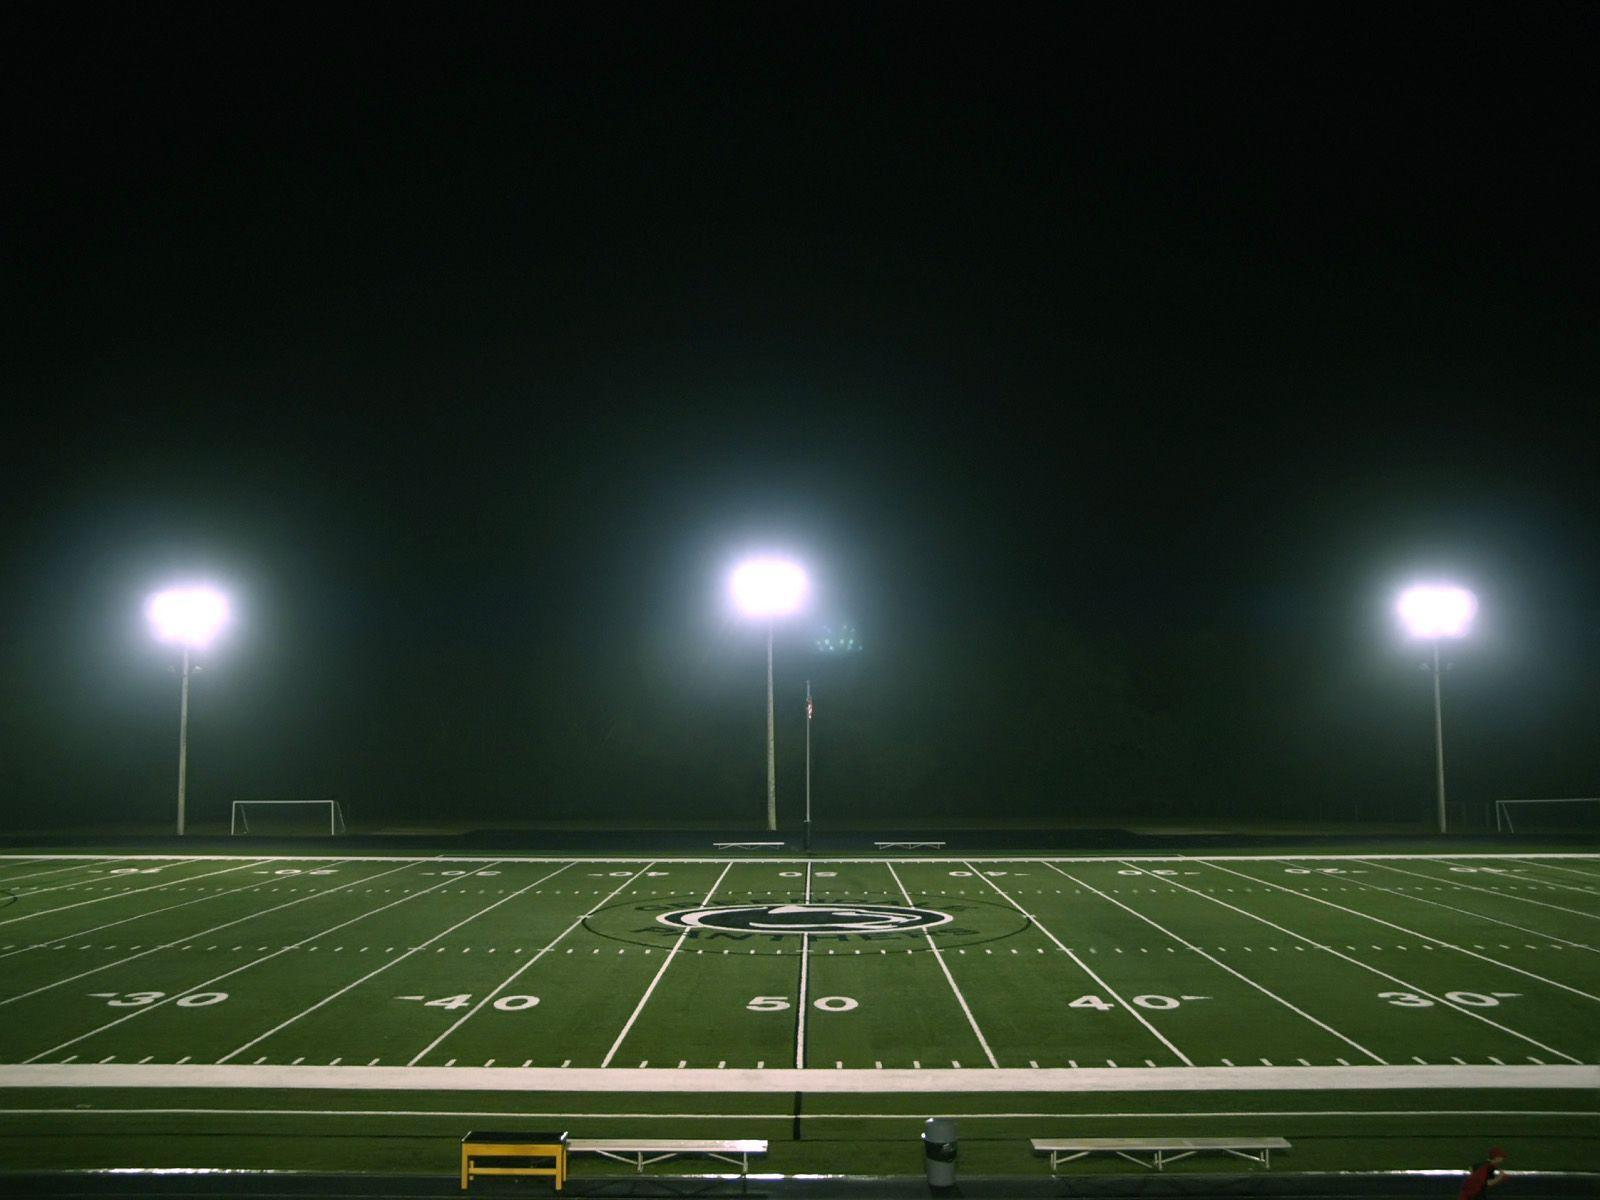 Football Field Wallpapers - Wallpaper Cave Soccer Backgrounds For Photography